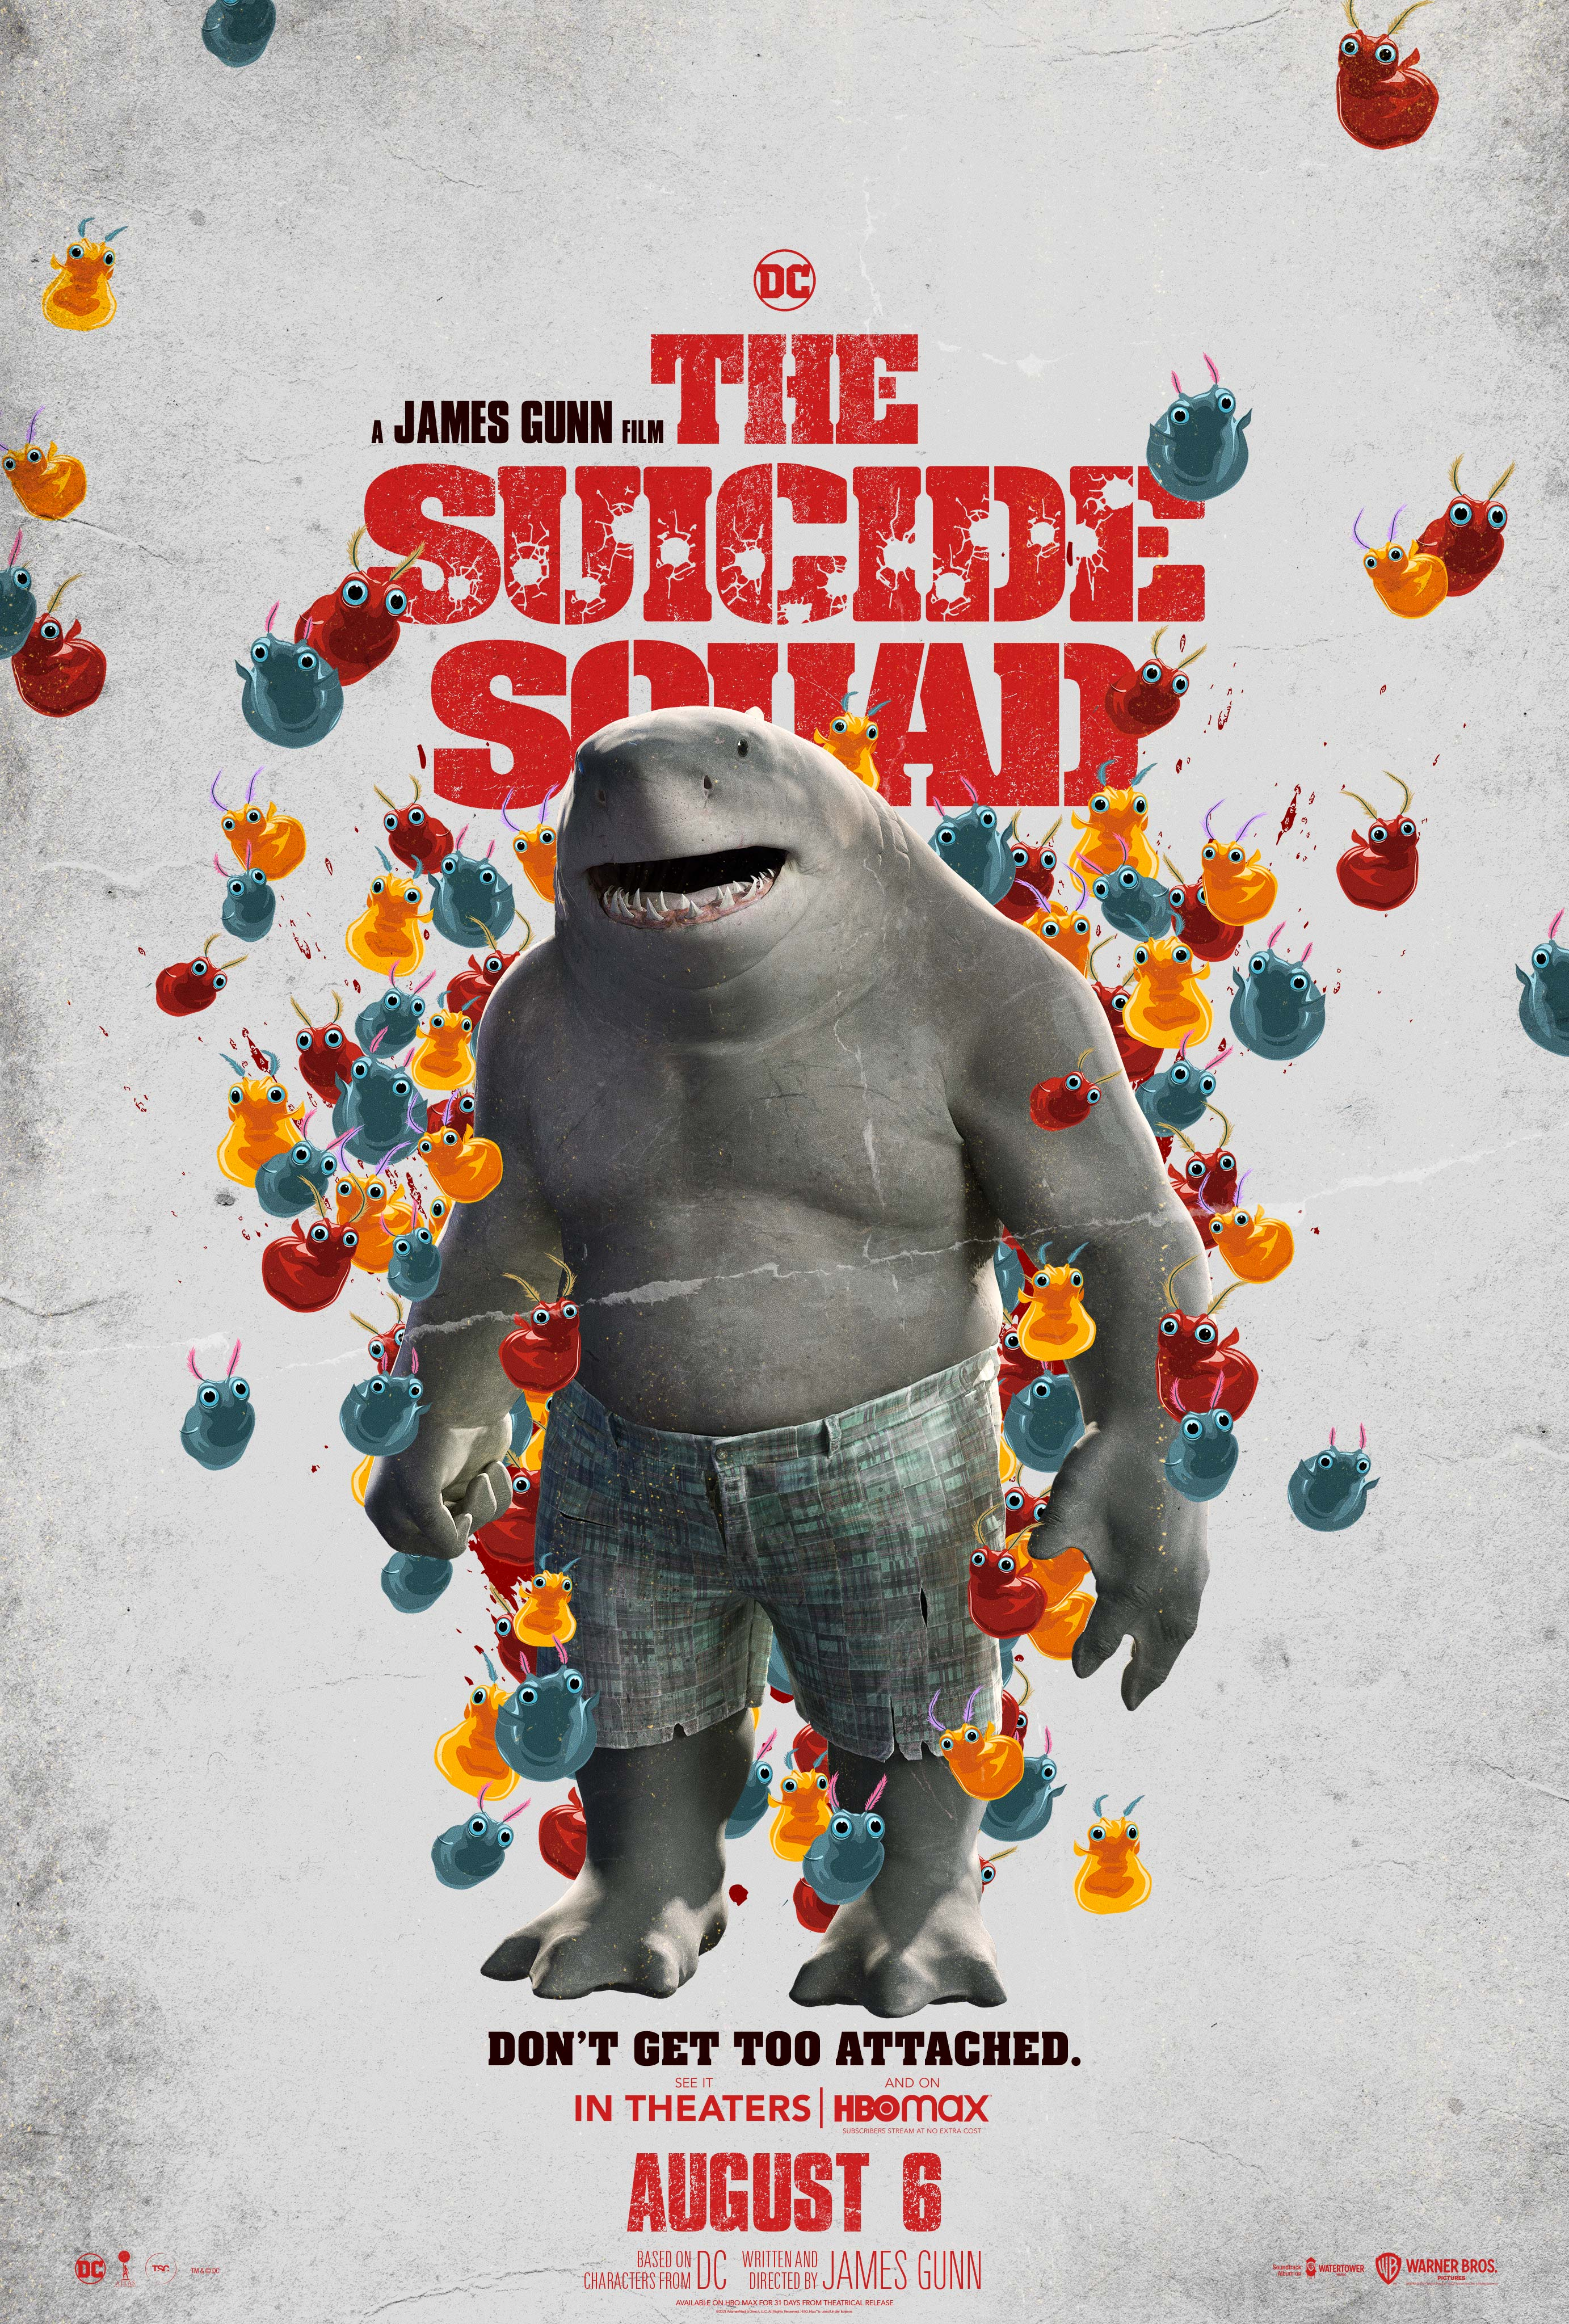 The Suicide Squad (2021) Character Poster - King Shark